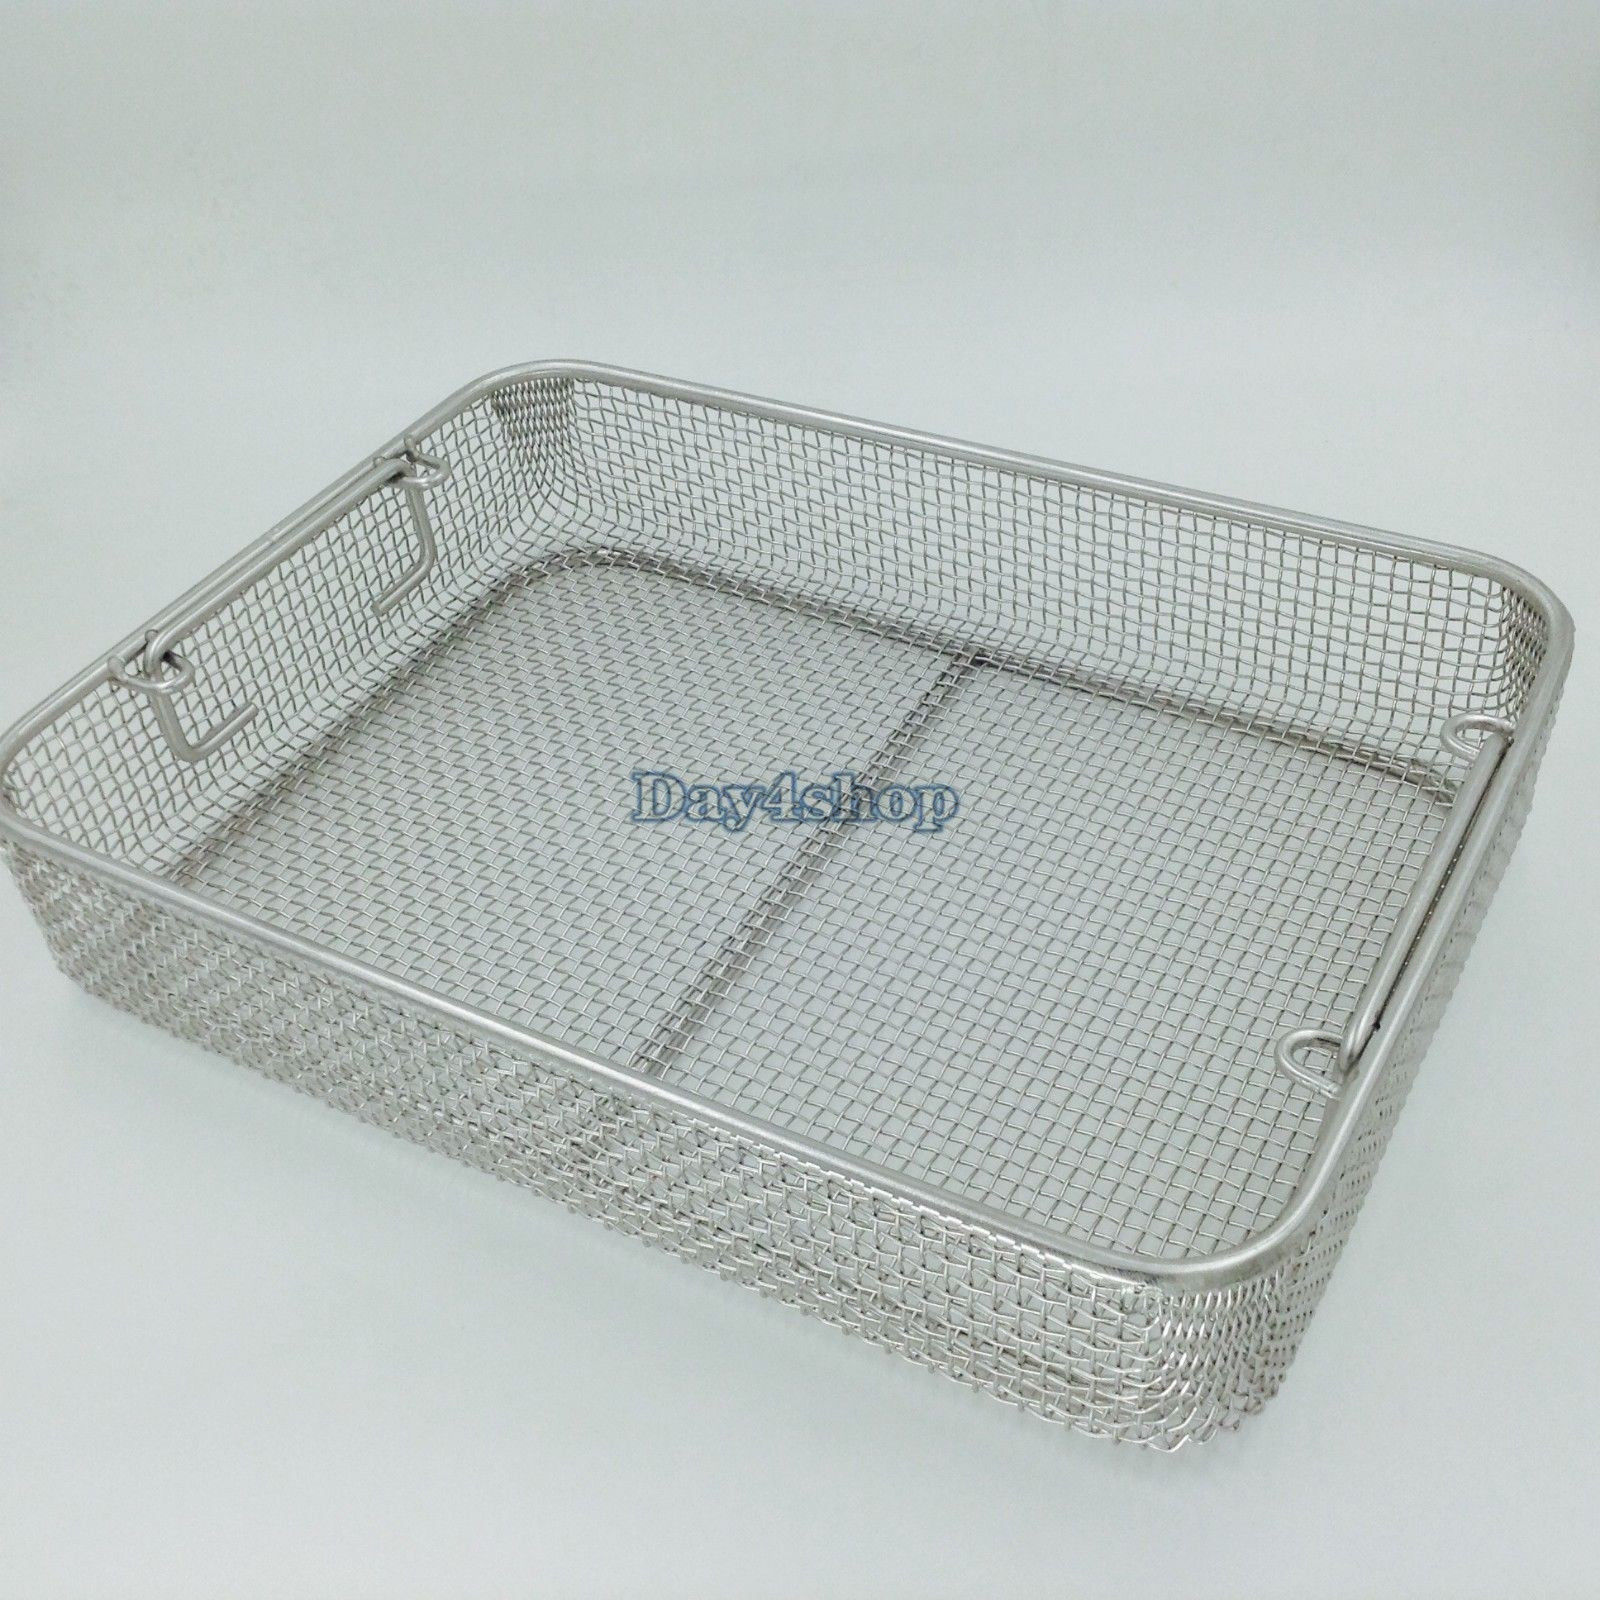 BEST New Stainless steel sterilization tray case box surgical instrument mt8121ie 12 1 inch hmi weinview touch screen mt8121ie with programming cable and software replace mt8121ih fast shipping